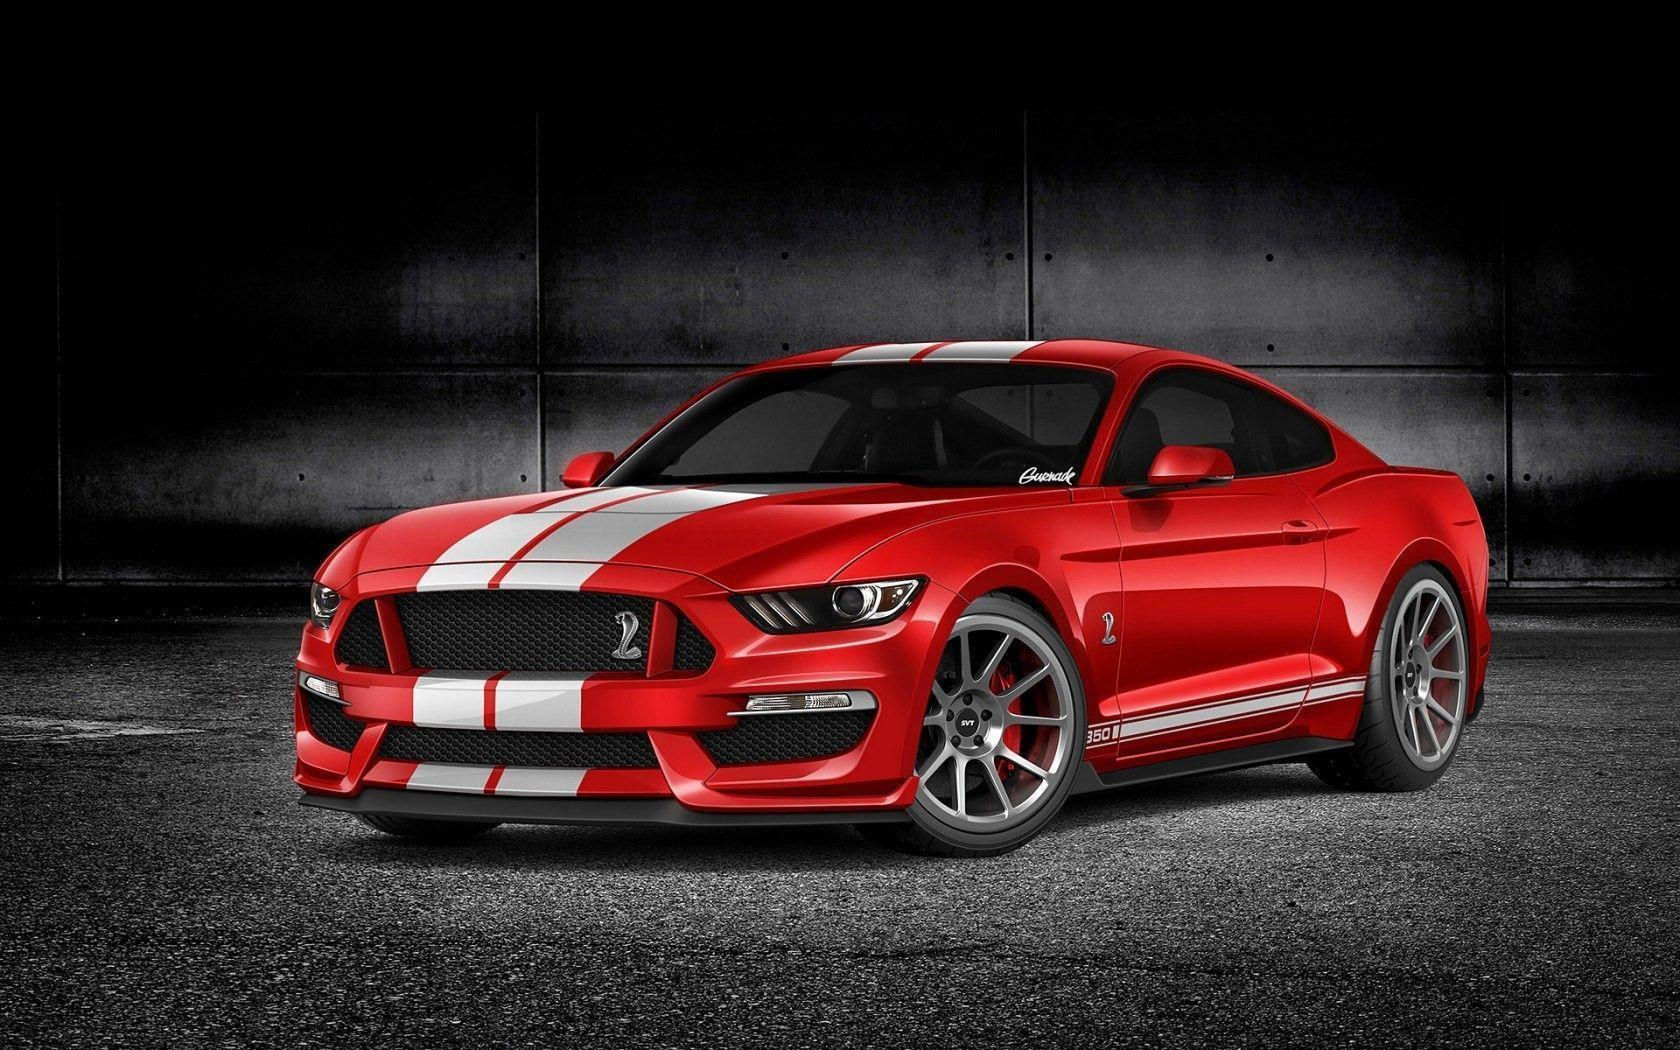 Red Ford Mustang Wallpapers Top Free Red Ford Mustang Backgrounds Wallpaperaccess